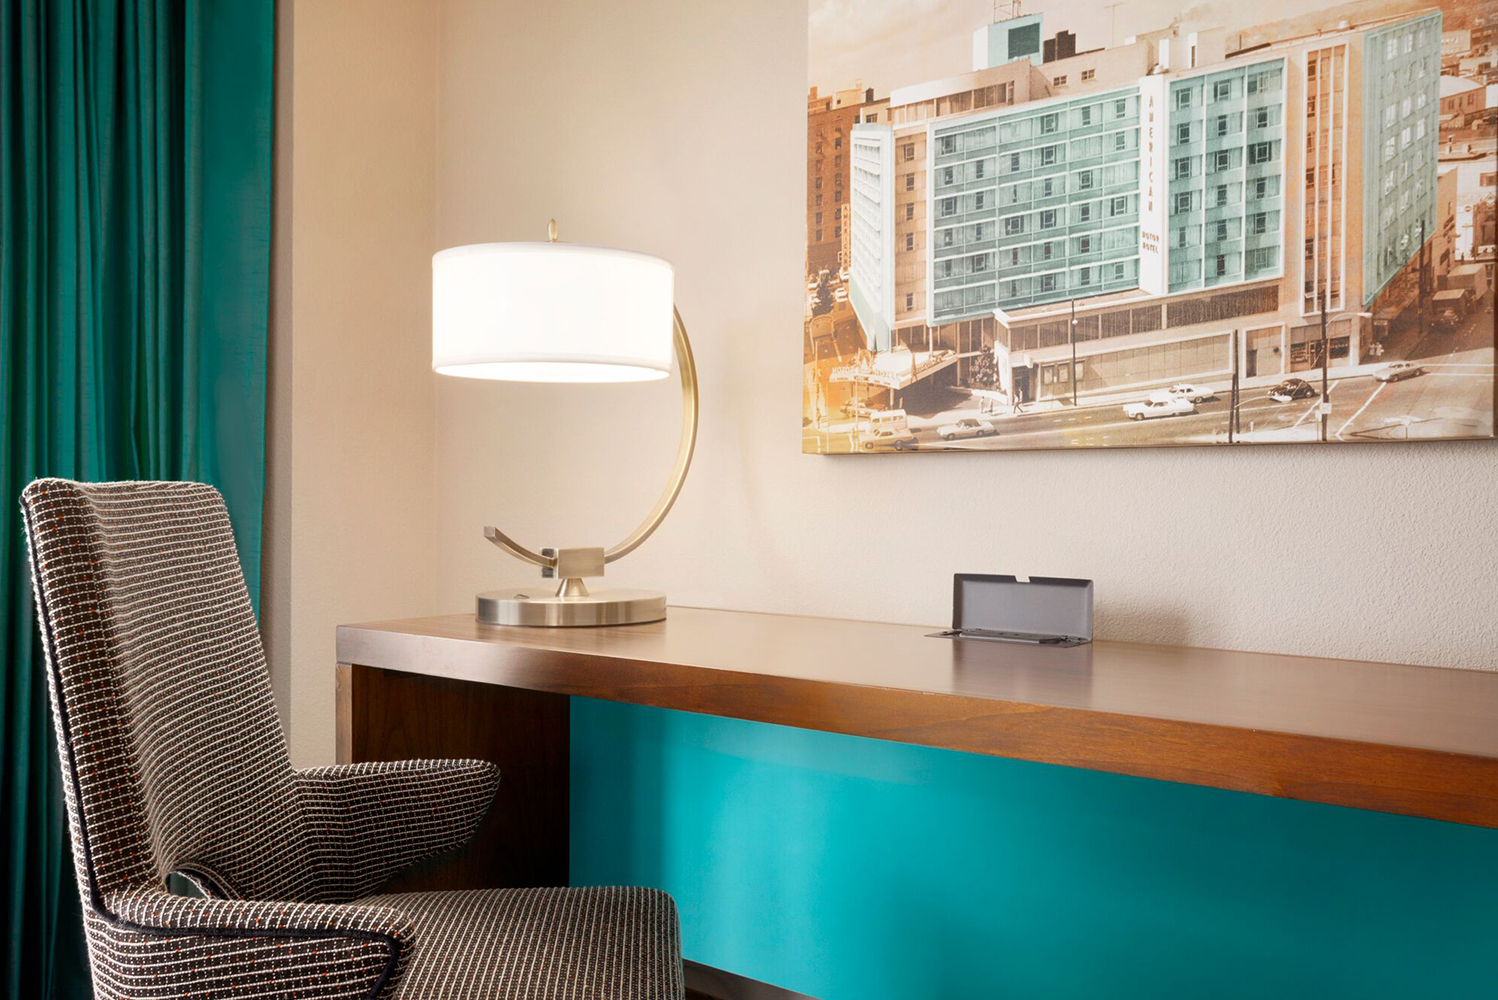 Downtown Atlanta's first modern hotel – The American Hotel, A DoubleTree by Hilton – was restored to its original glory by designONEstudio.